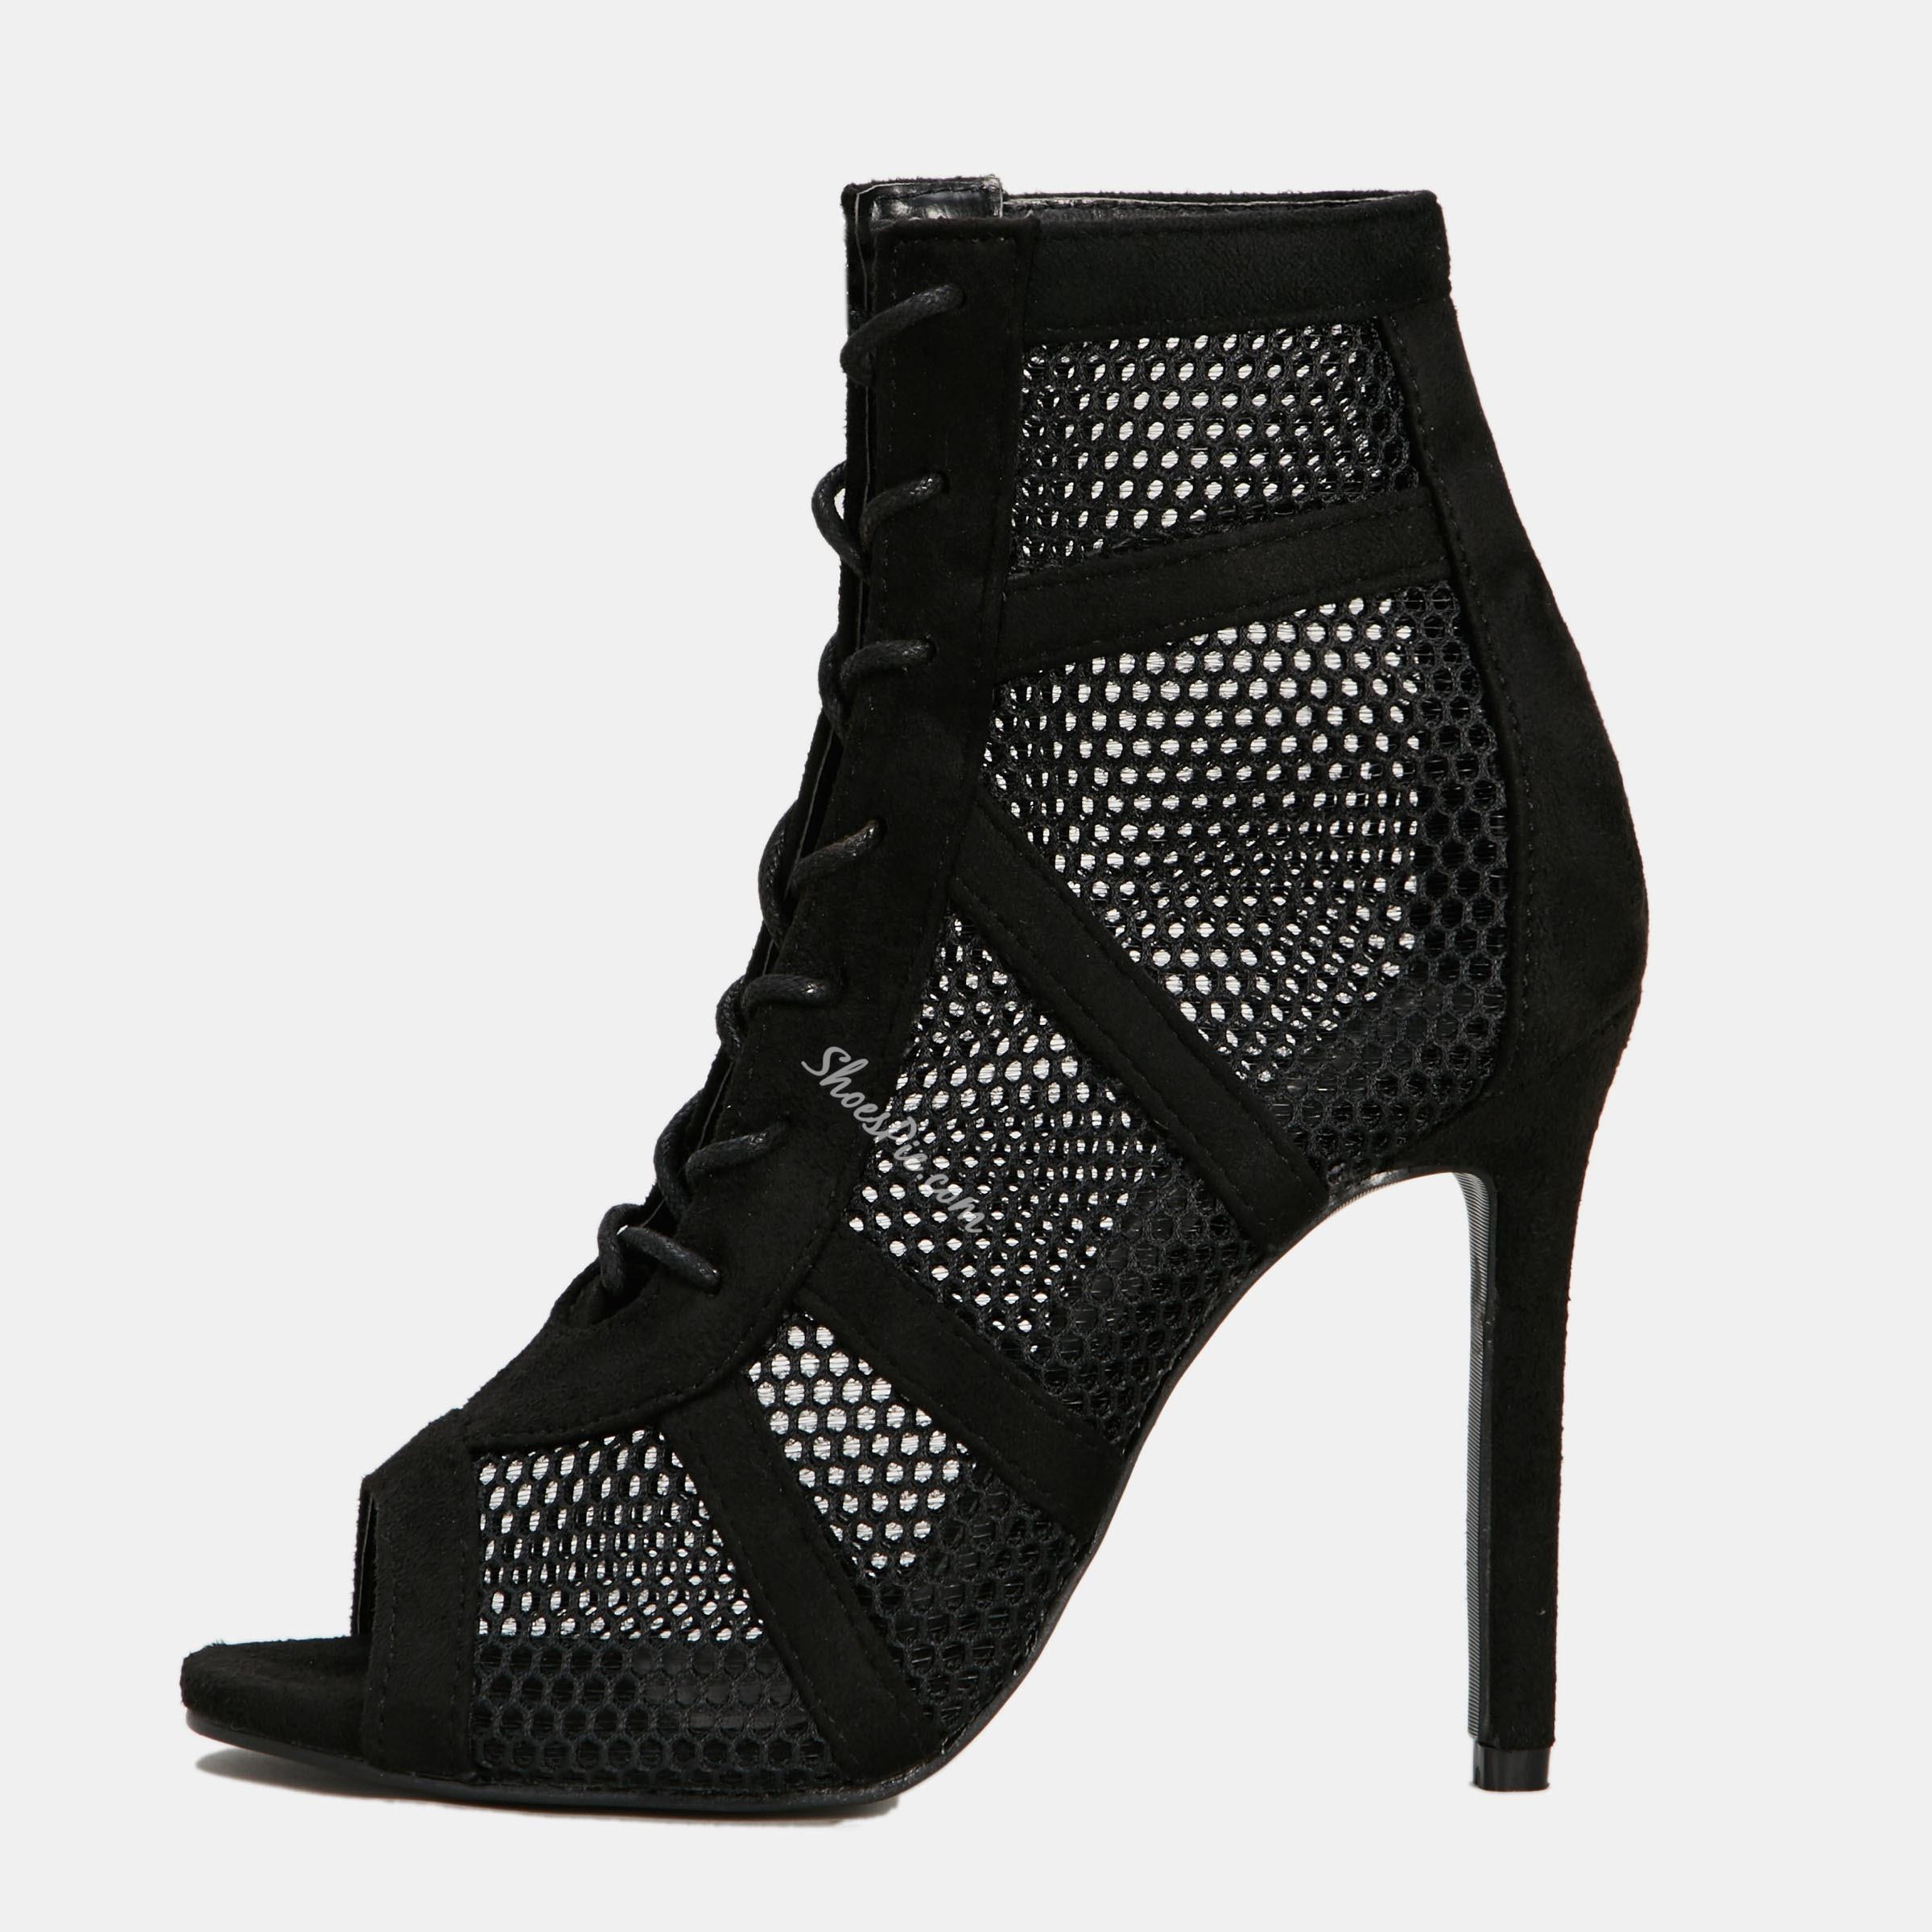 Shoespie Black Trendy Peep Toe Stiletto Heel Lace-Up Ankle Boots